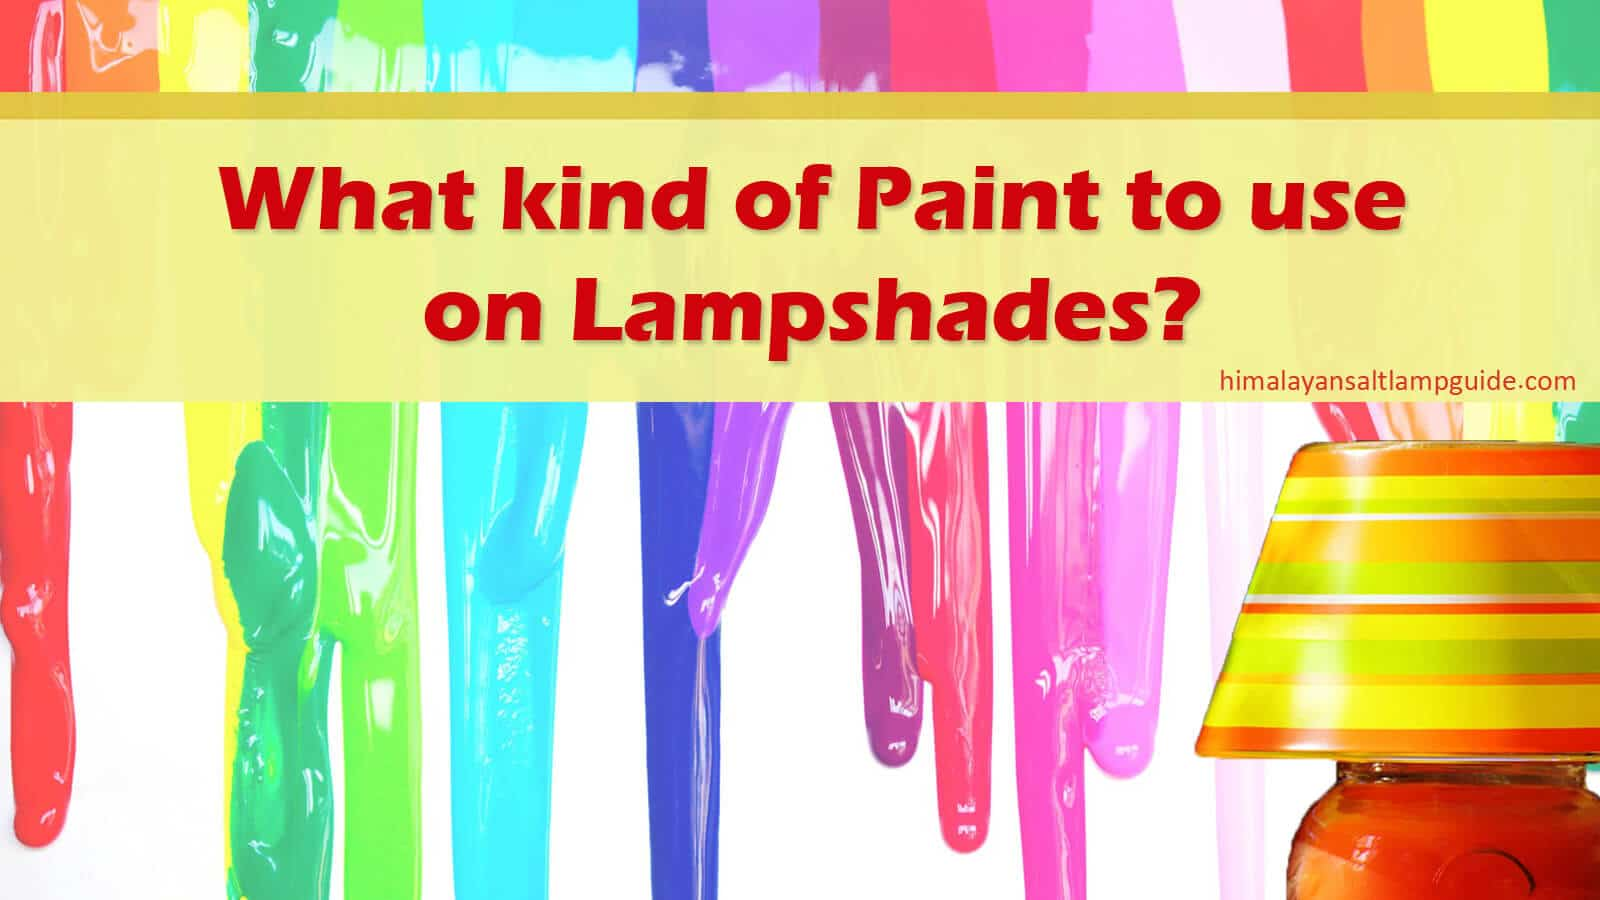 What Kind of Paint to use on Lampshades